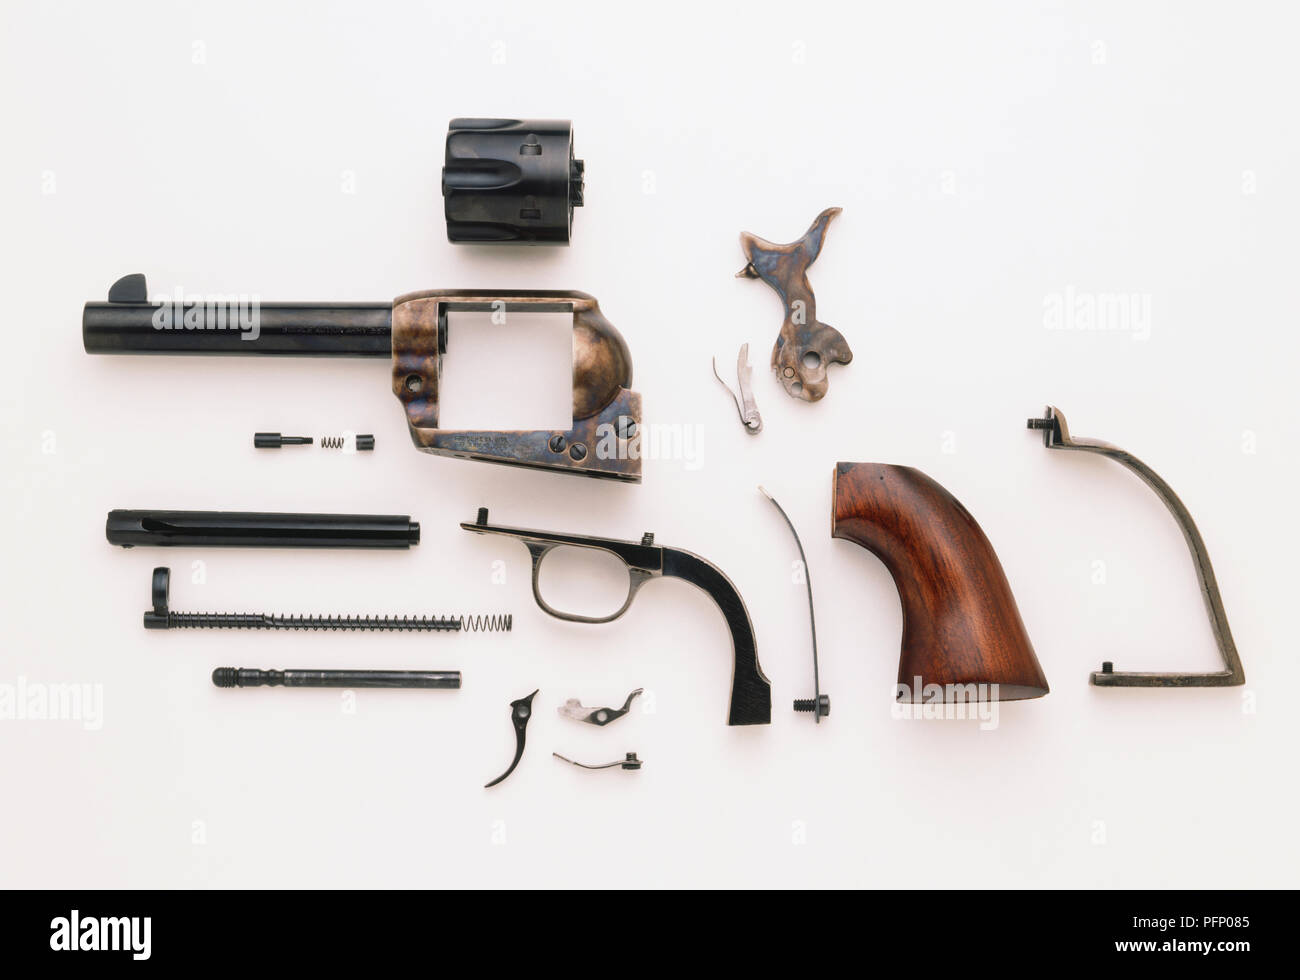 1873 Colt single-action Army revolver